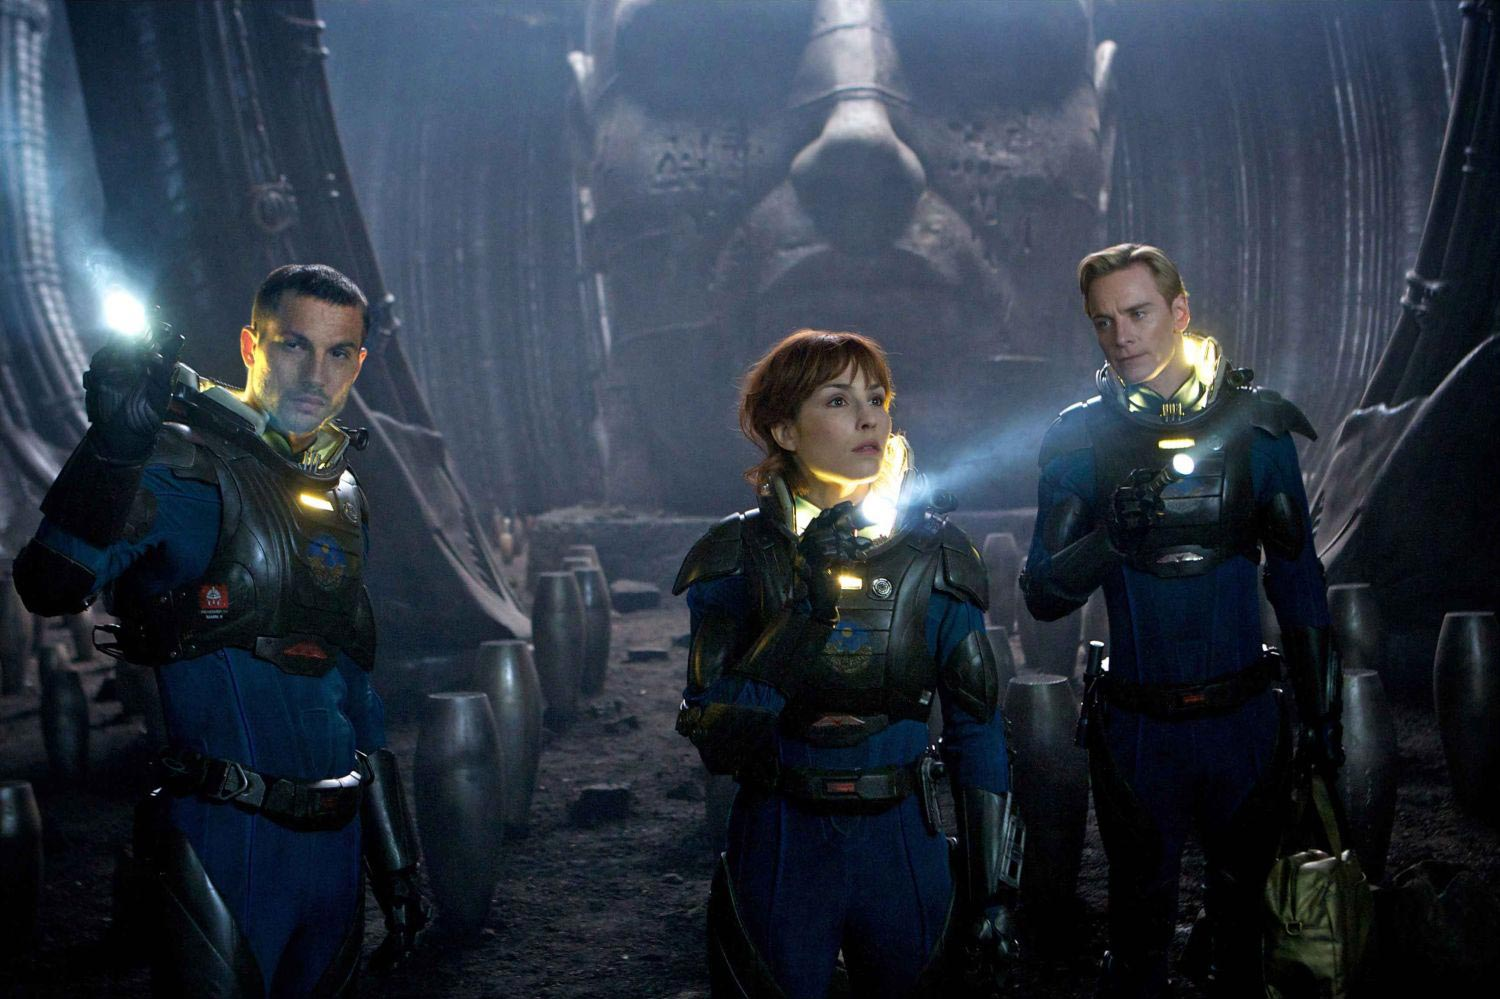 Logan Marshall-Green, Noomi Rapace and Michael Fassbender explore the ruins an Engineer's temple in  Prometheus.